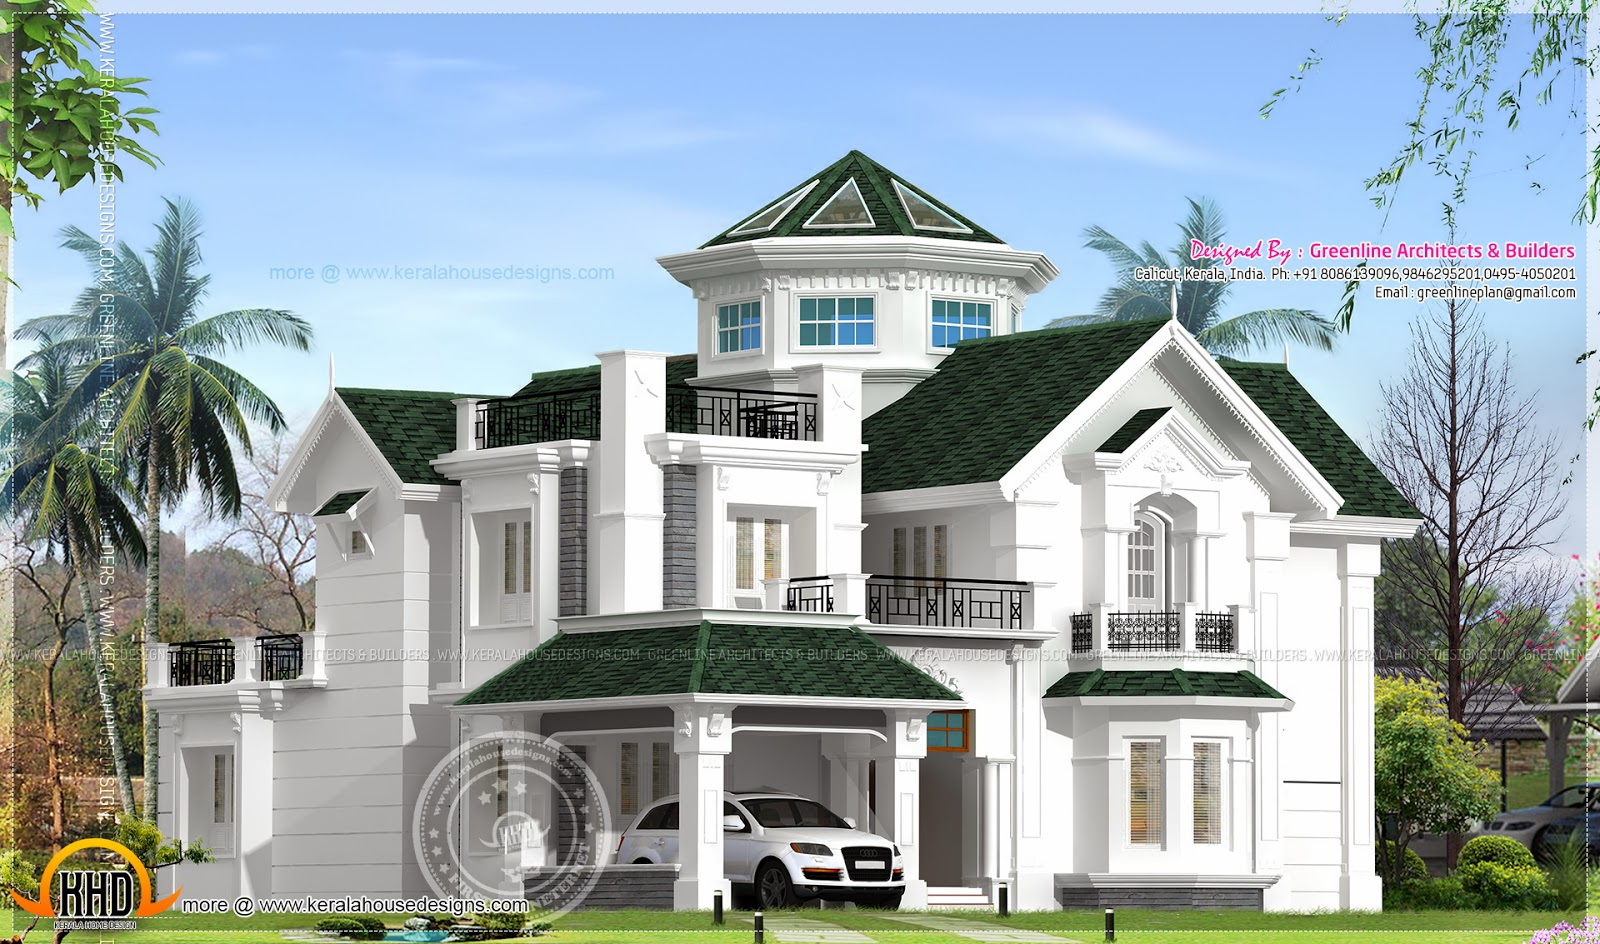 June 2015 home kerala plans Colonial style house